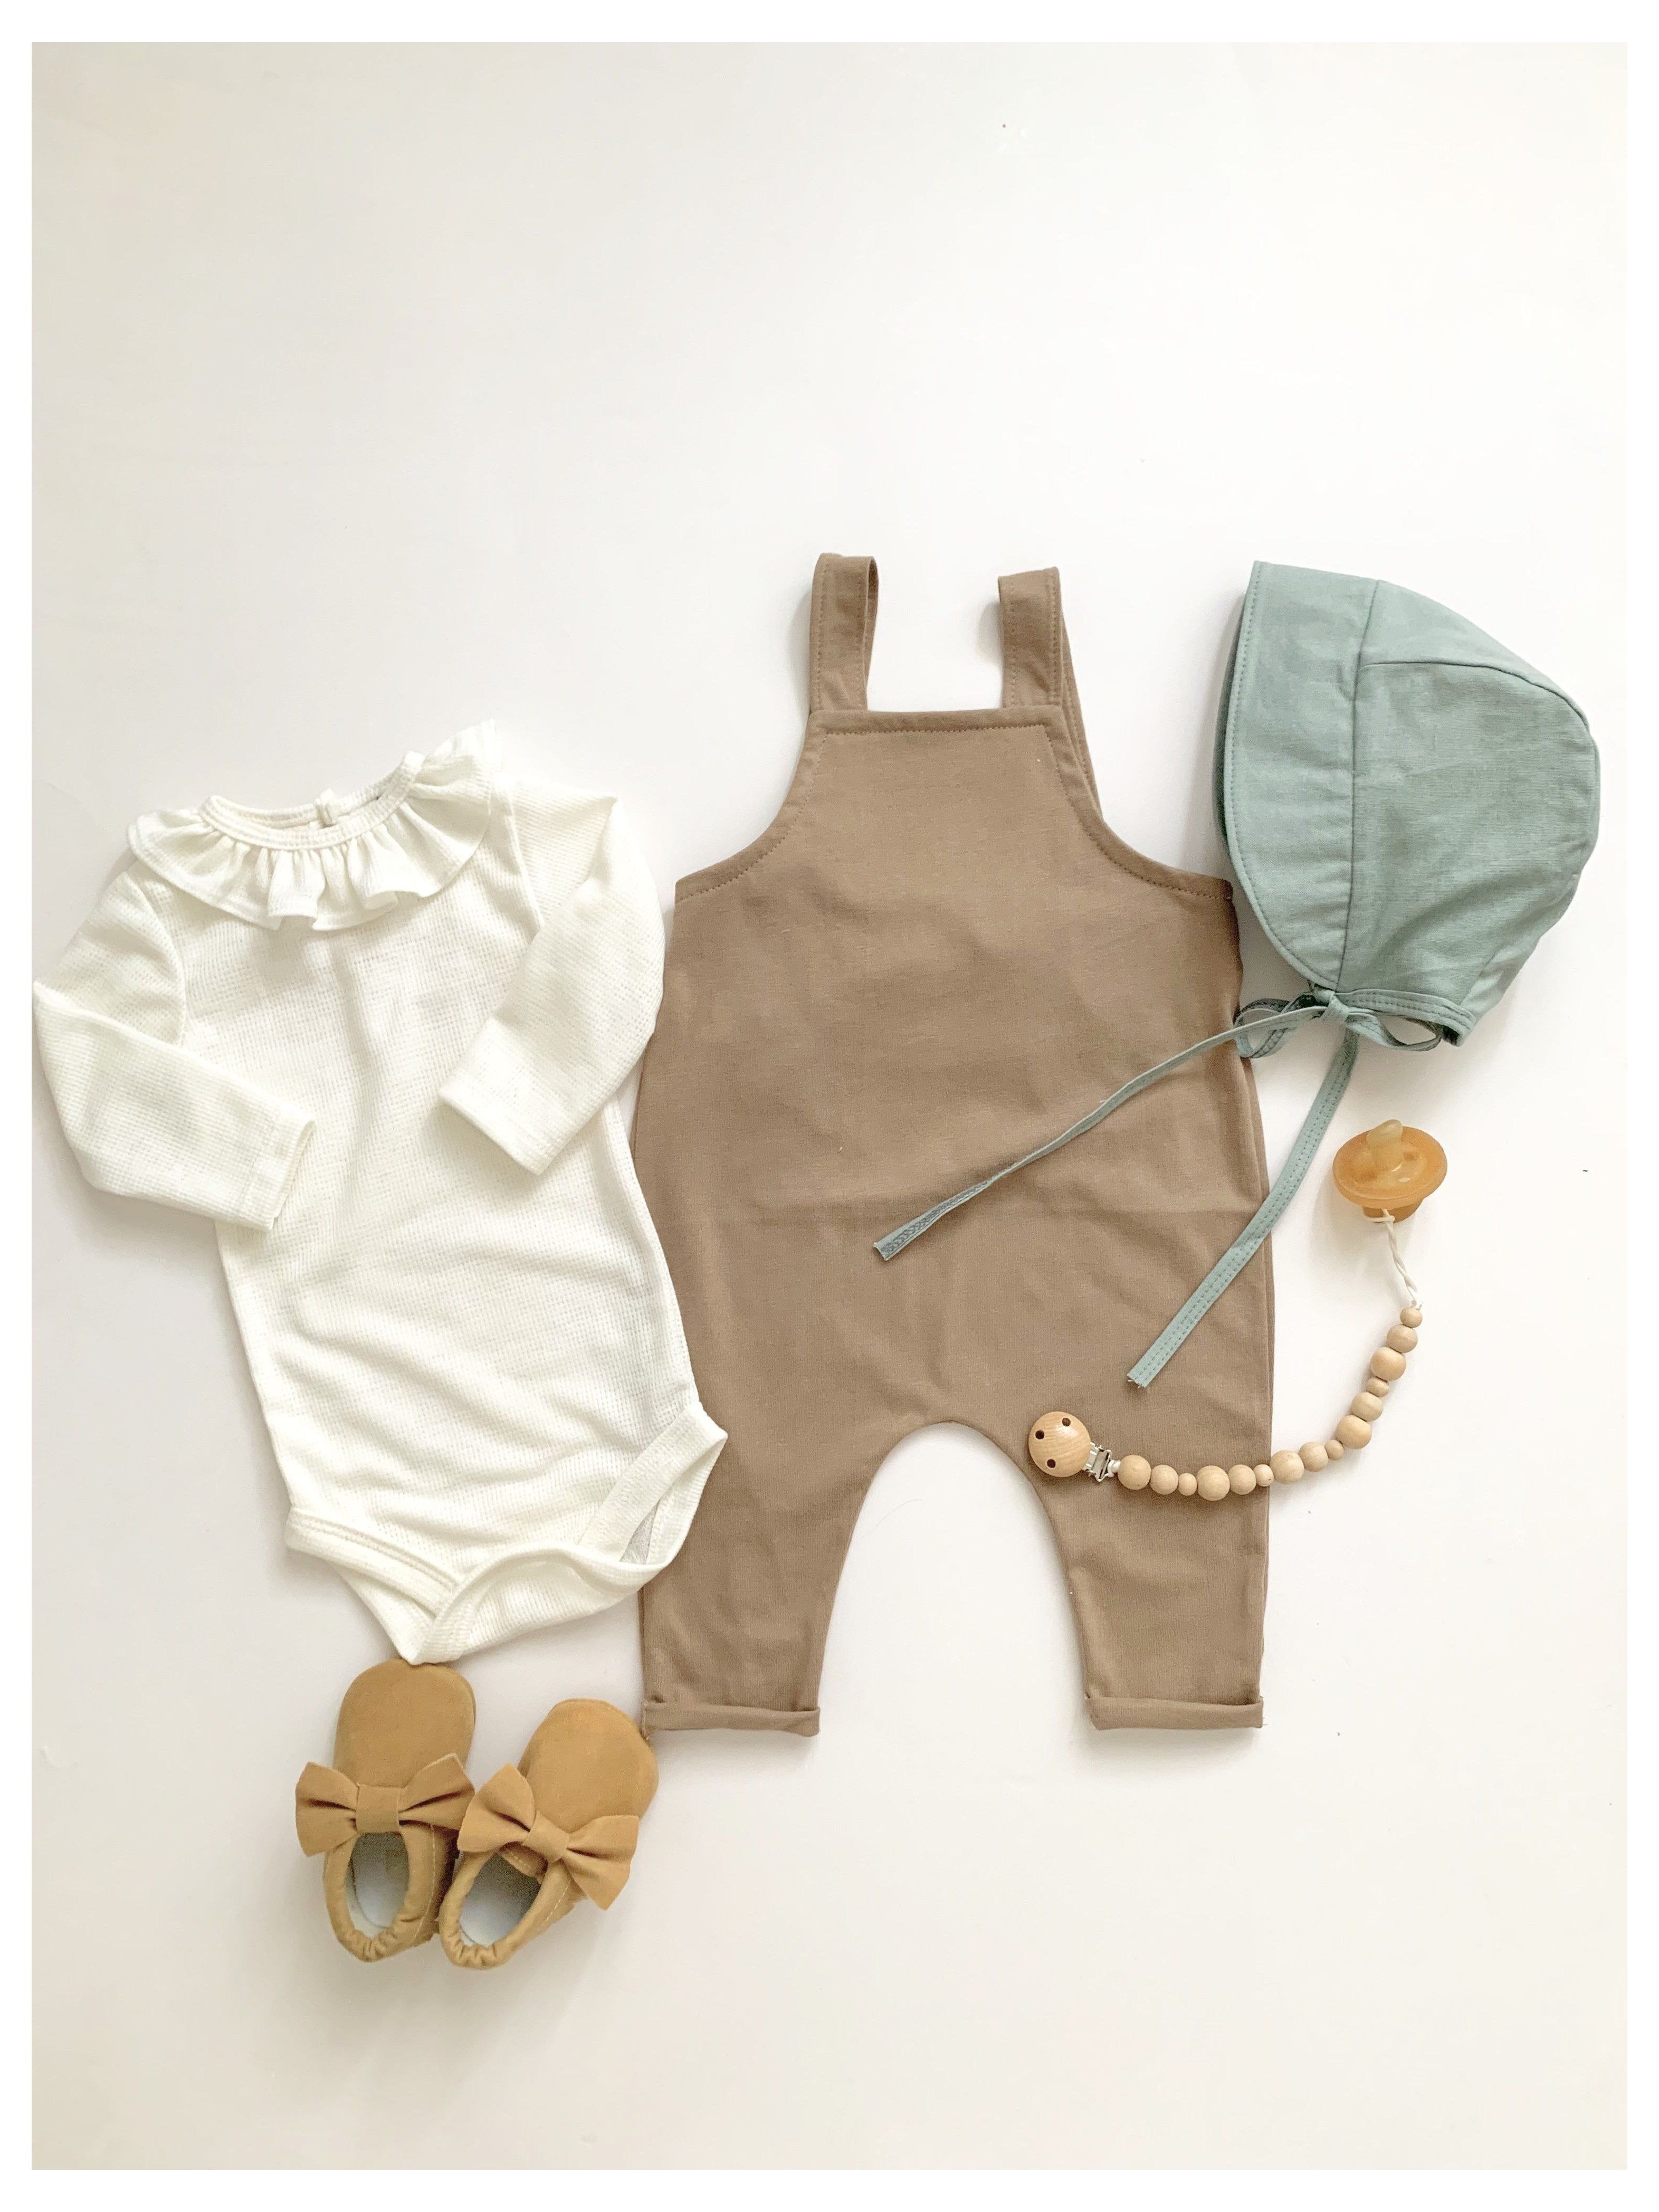 First Baby Outfit Minimalist Baby Clothes Boy Minimalistbabyclothesboy Minimalist Baby Clothes Baby Outfits Newborn Baby Girl Clothes